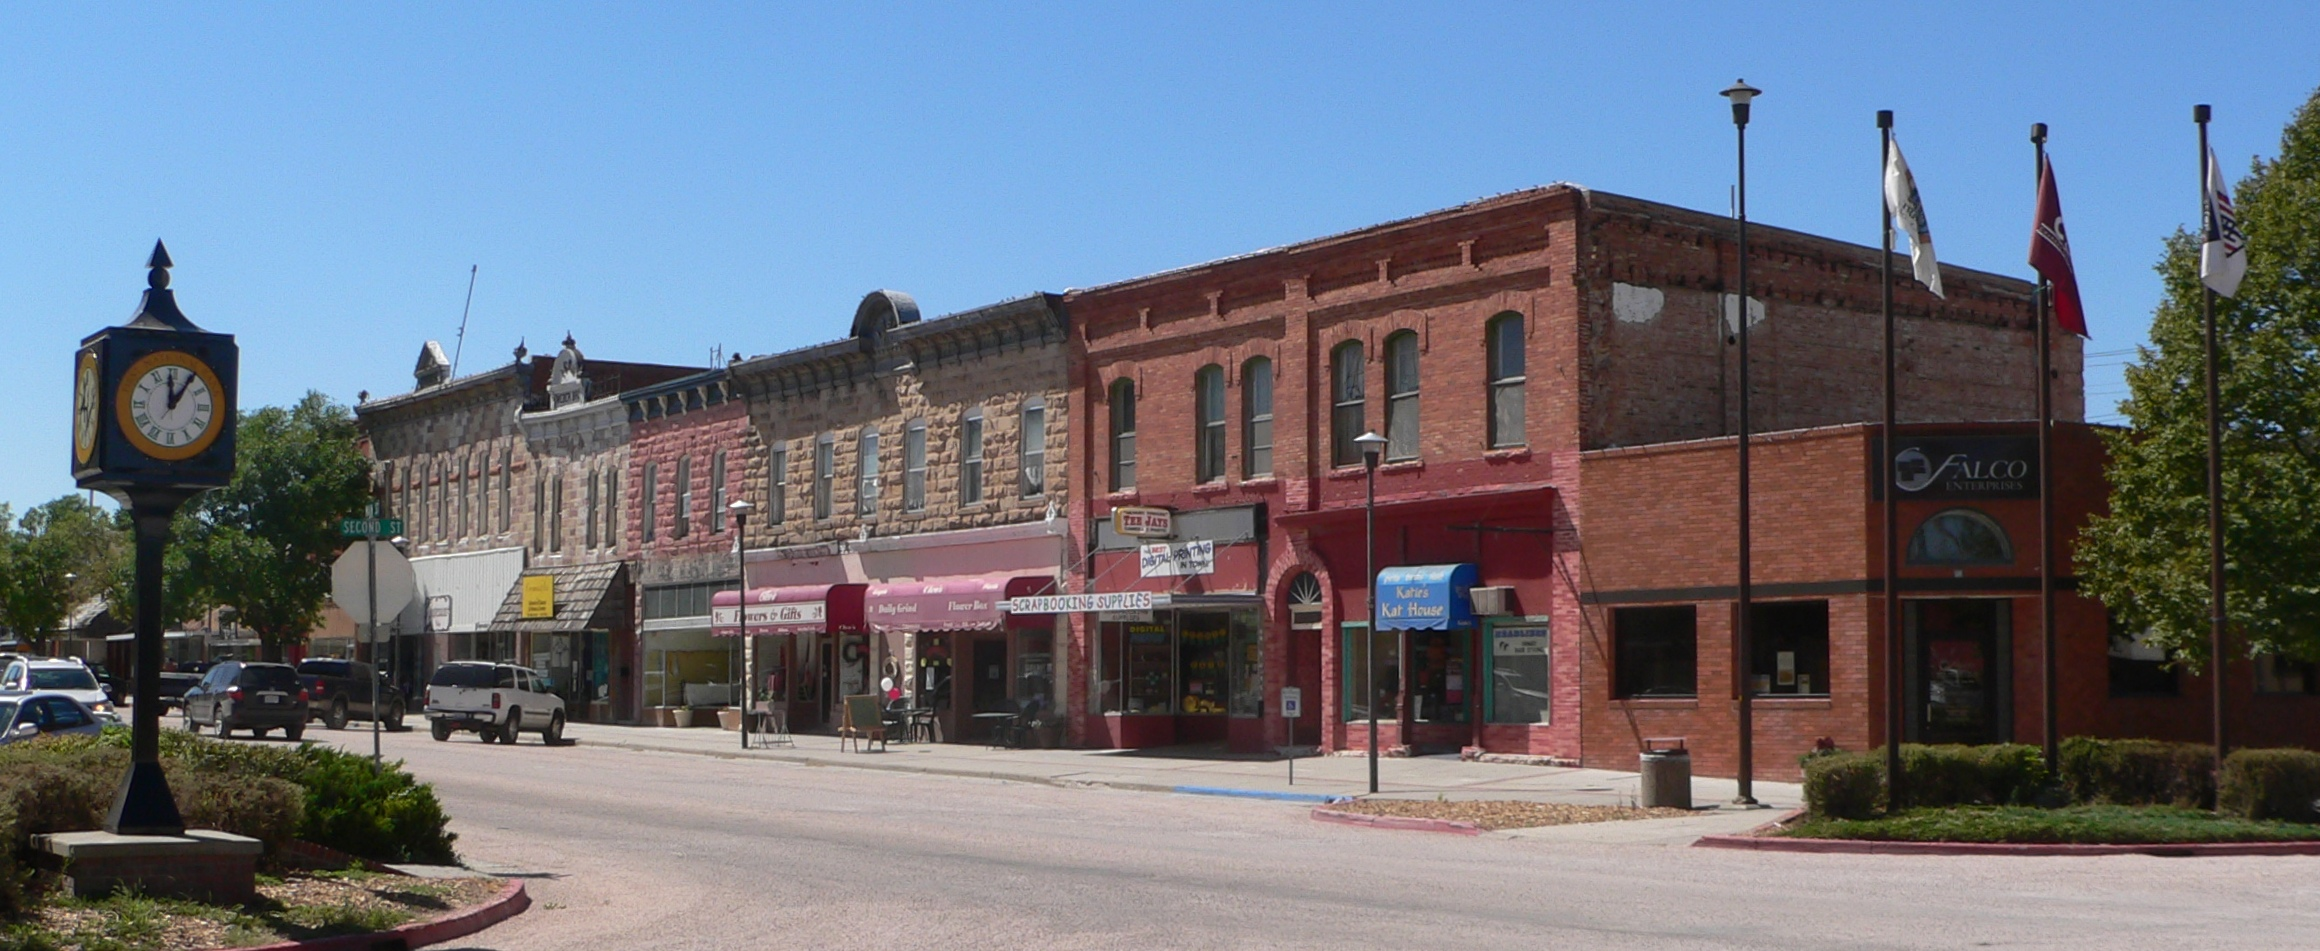 chadron dating Latest local news for chadron, ne : local news for chadron, ne continually updated from thousands of sources on the web.